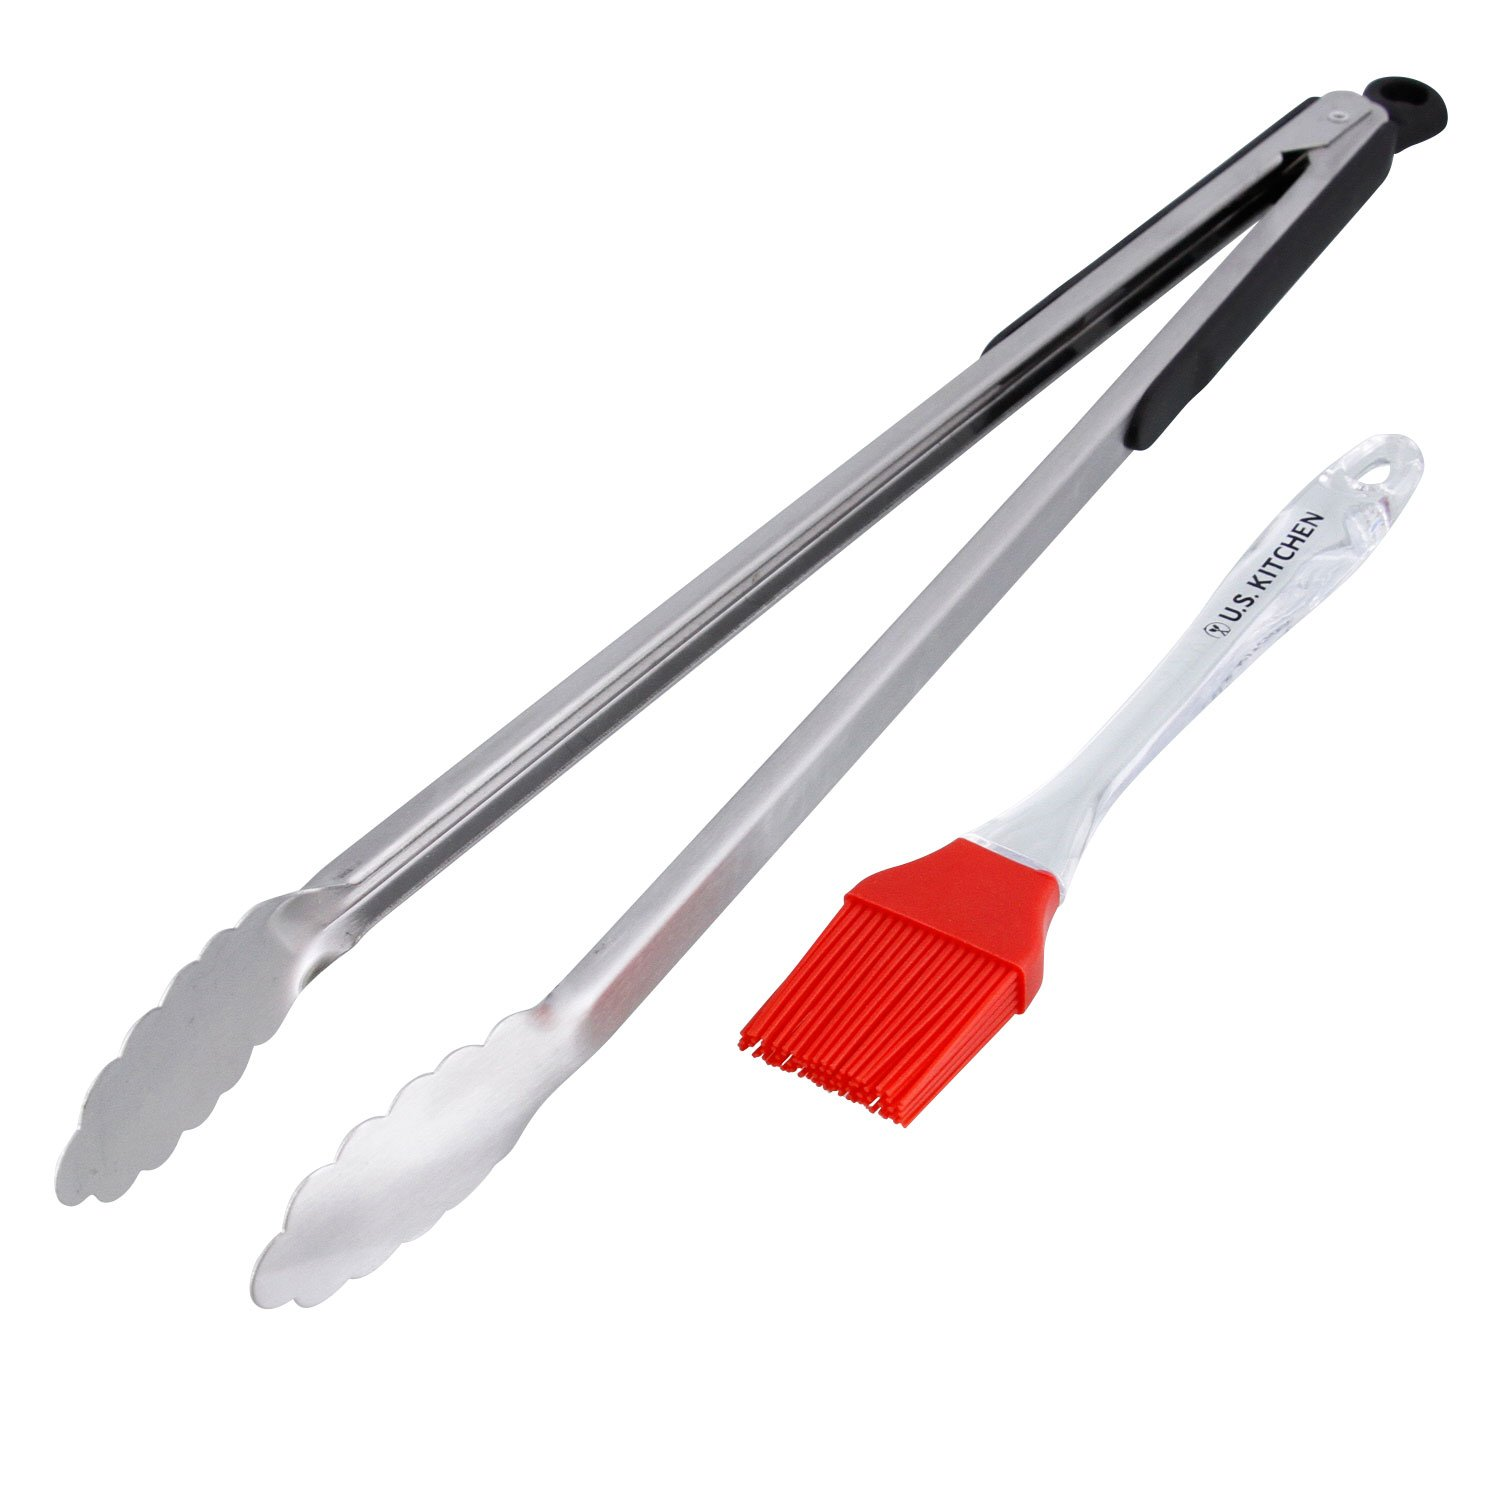 BBQ Masters 2 Piece 18'' Stainless Steel Locking Tongs and Silicone Basting Brush Set - Extra Long Tongs for Safer Barbecue Food Cooking, Grilling, Turning, Flipping and Serving